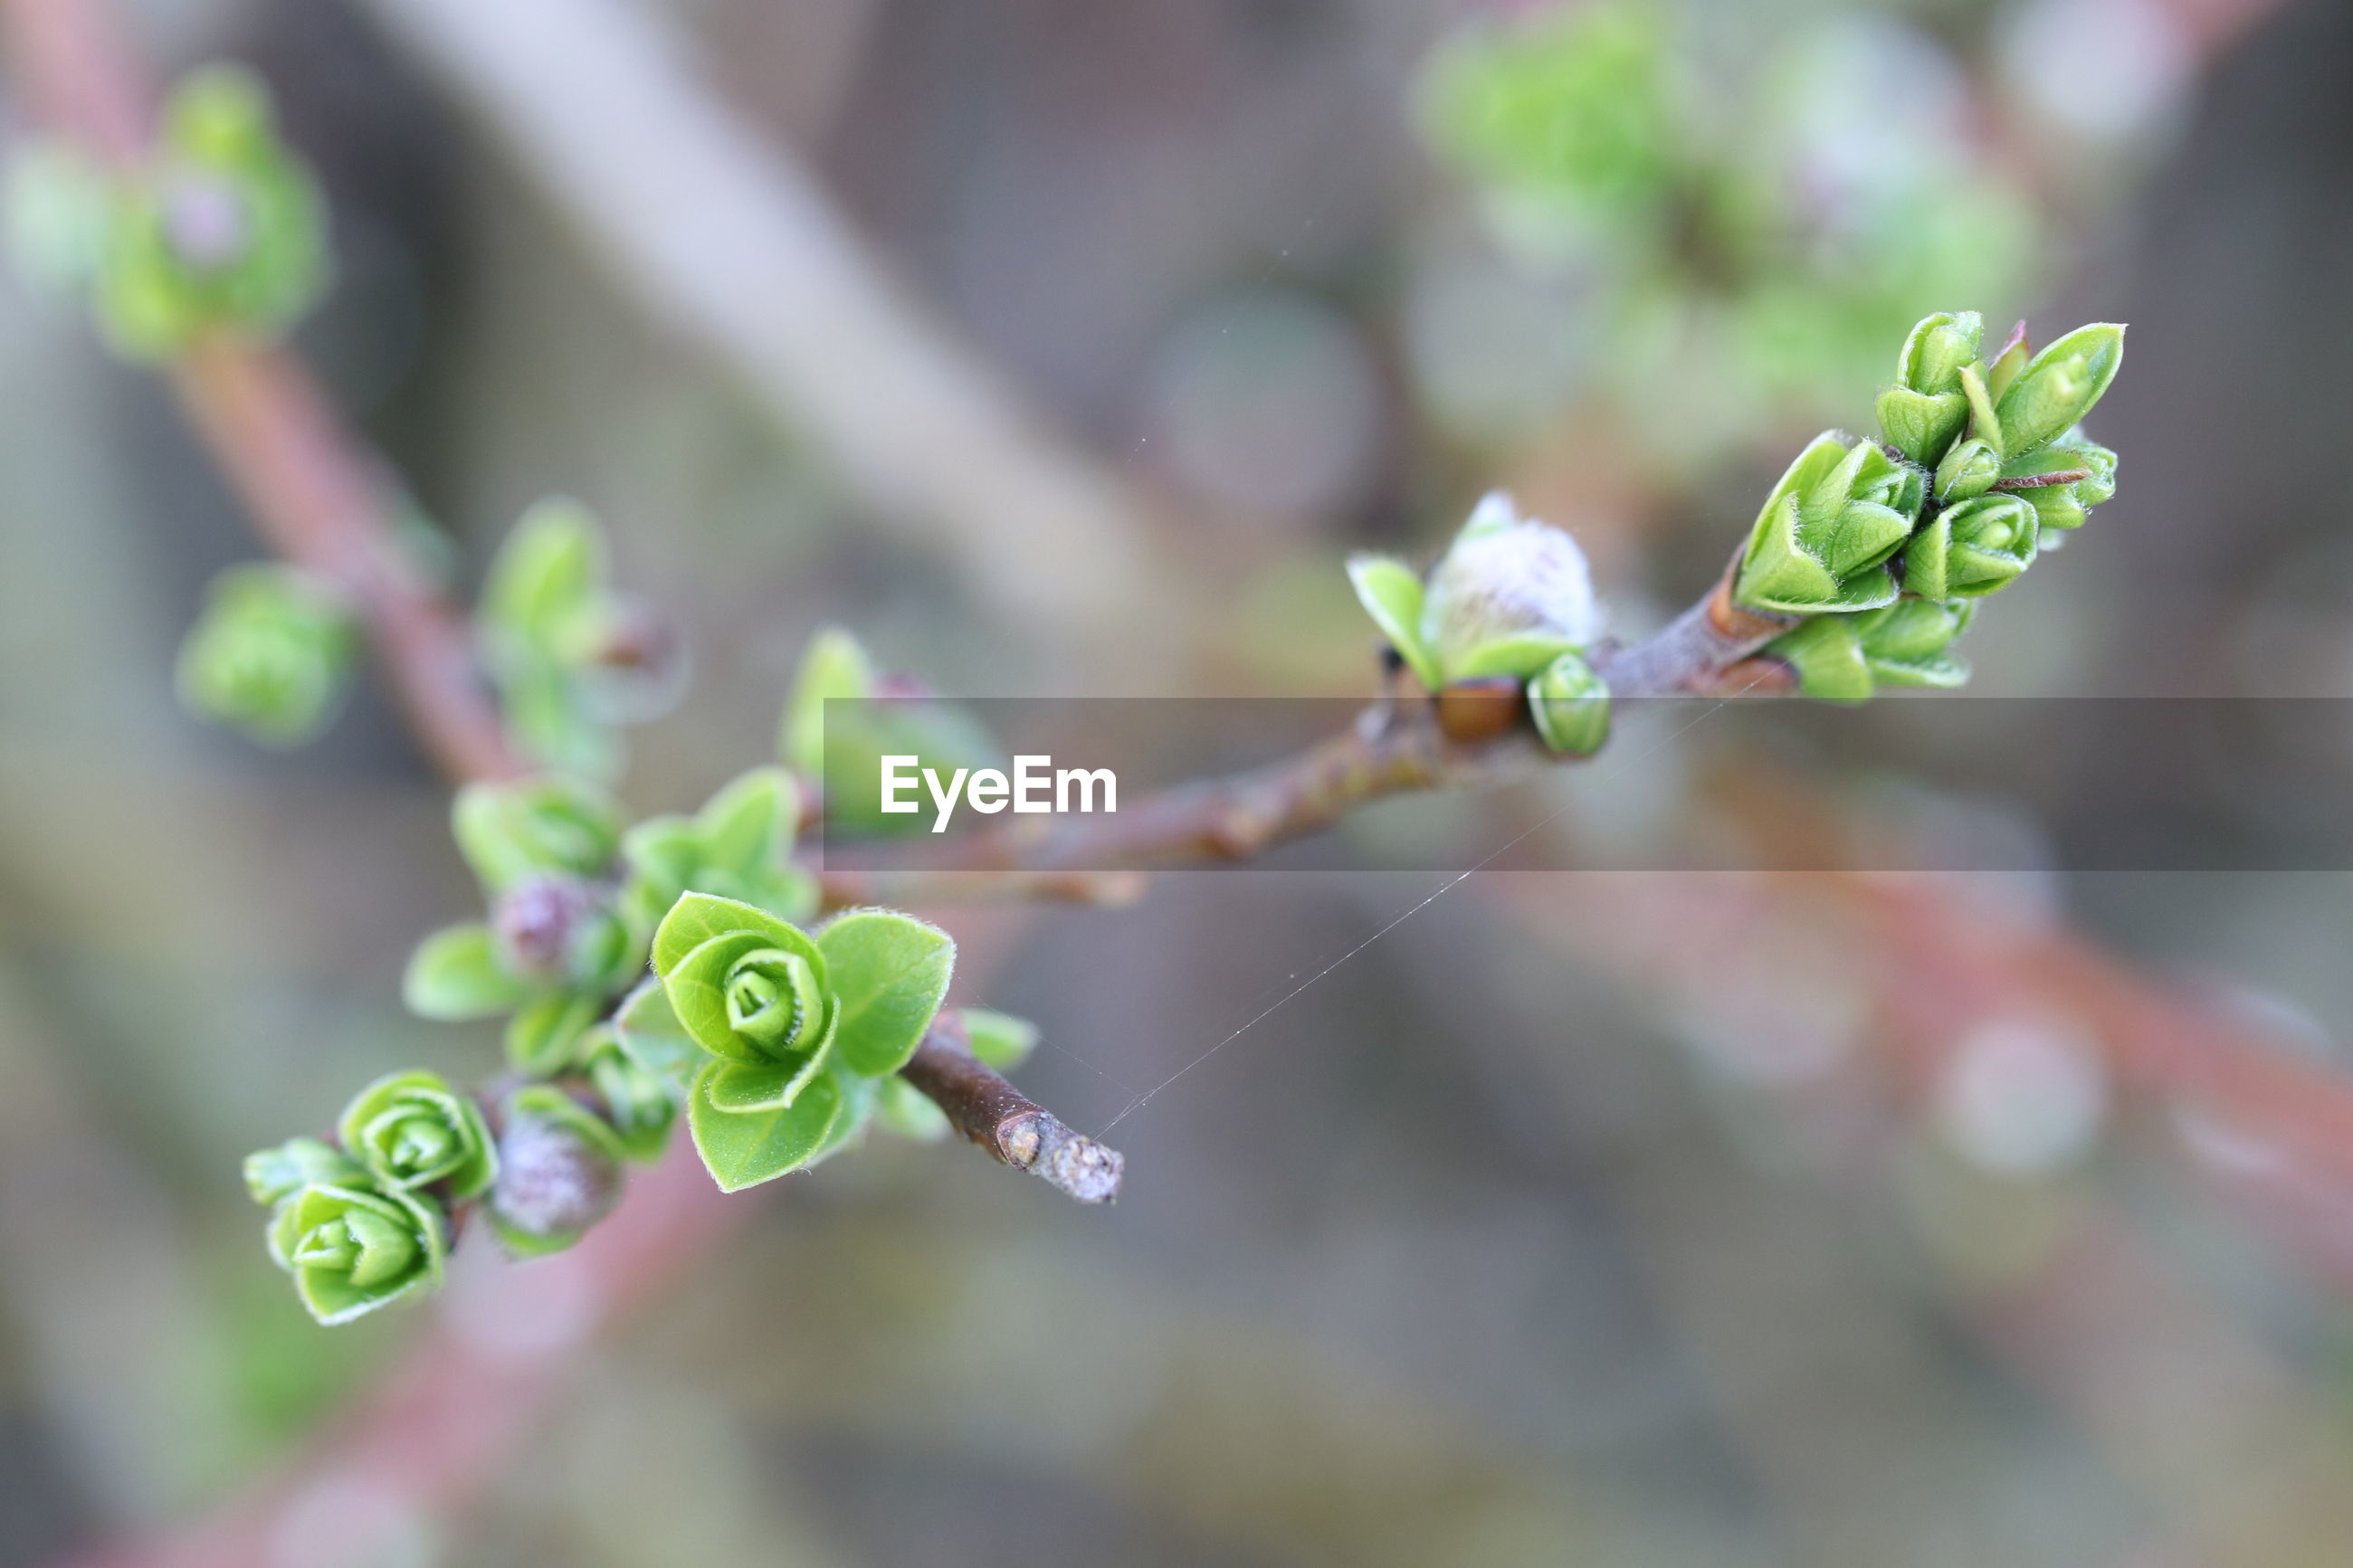 CLOSE-UP OF GREEN PLANT WITH BUDS